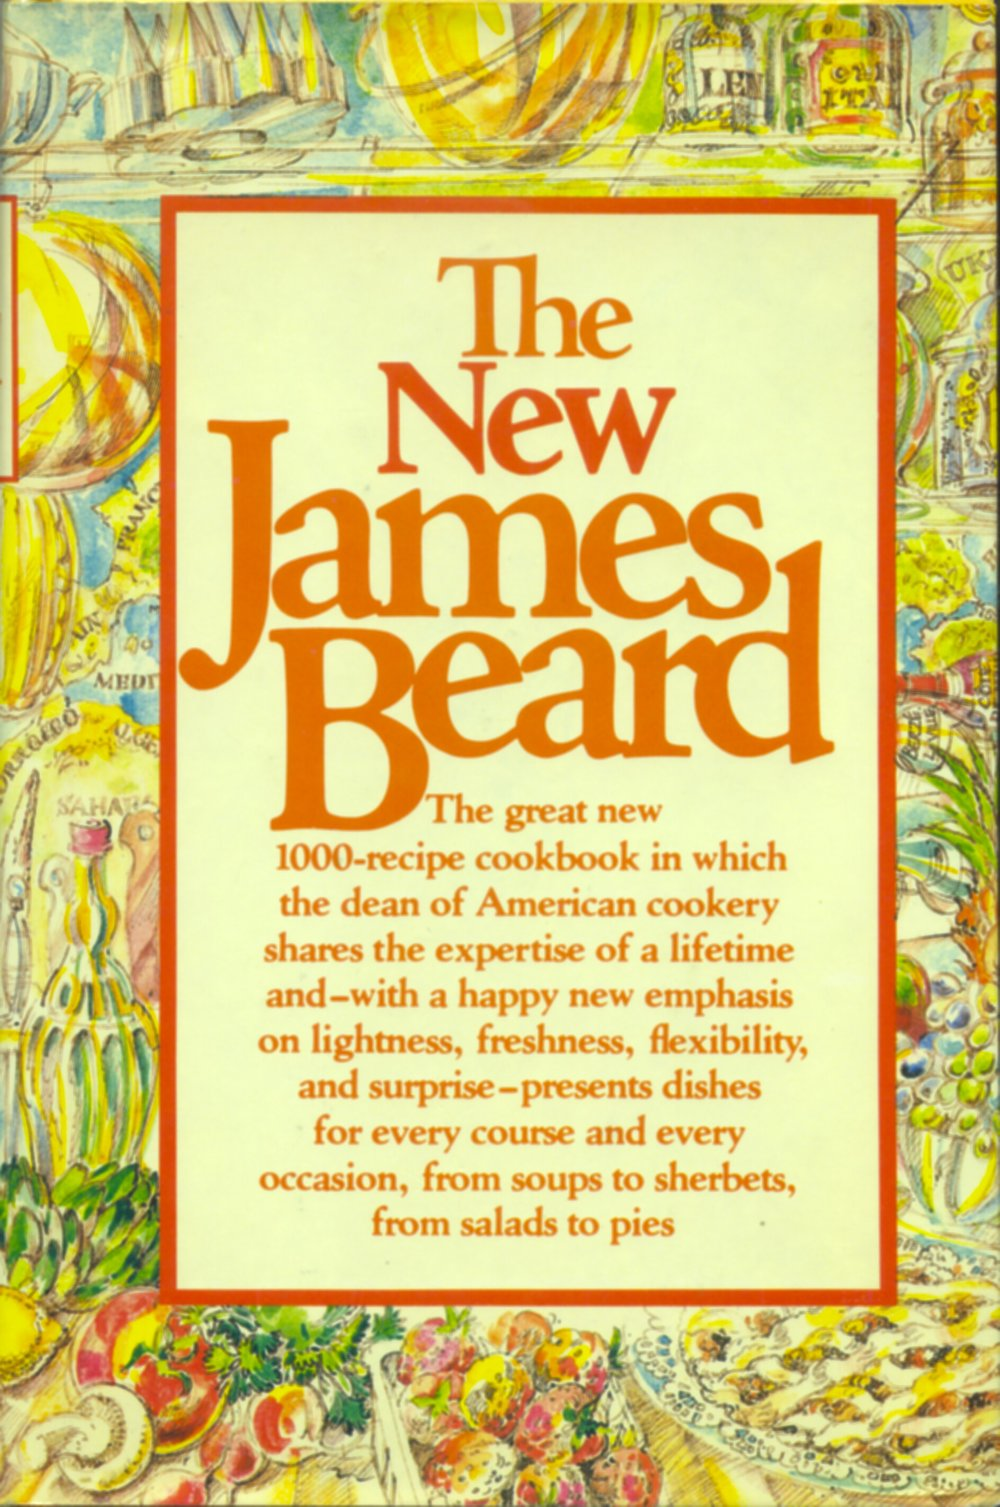 The New James Beard published in 1981 by Knopf, mine is a first edition